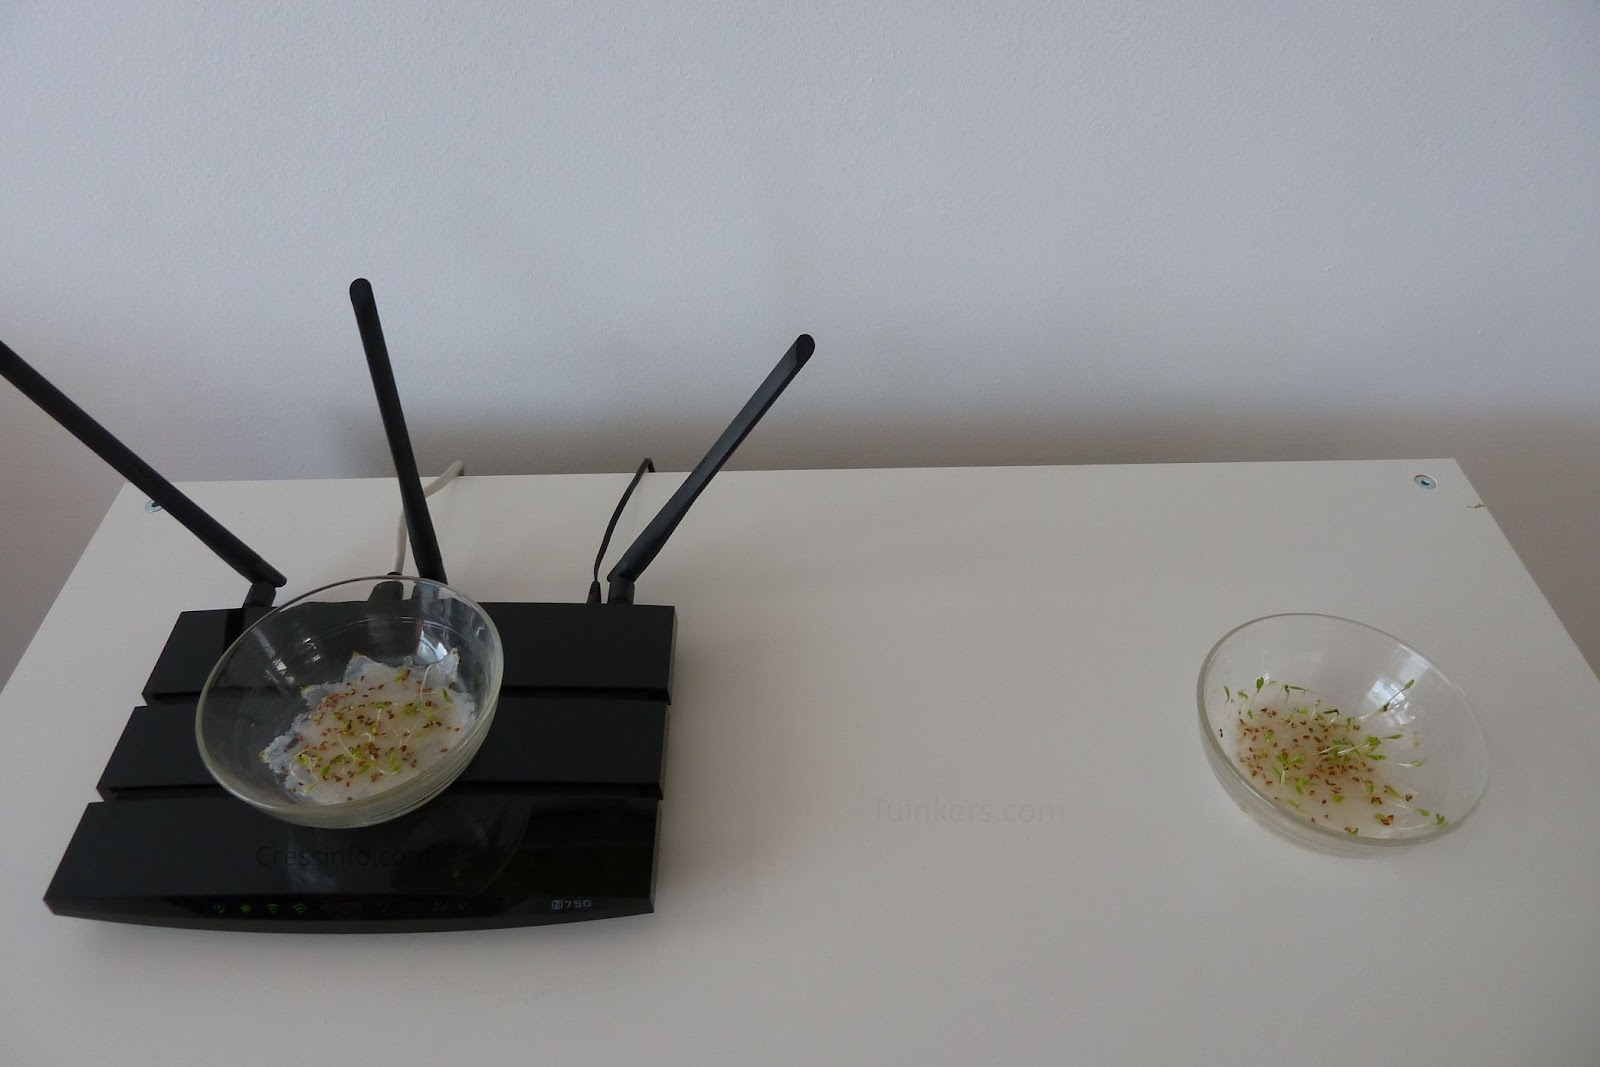 Wifi experiment on cress growth - Cressinfo.com